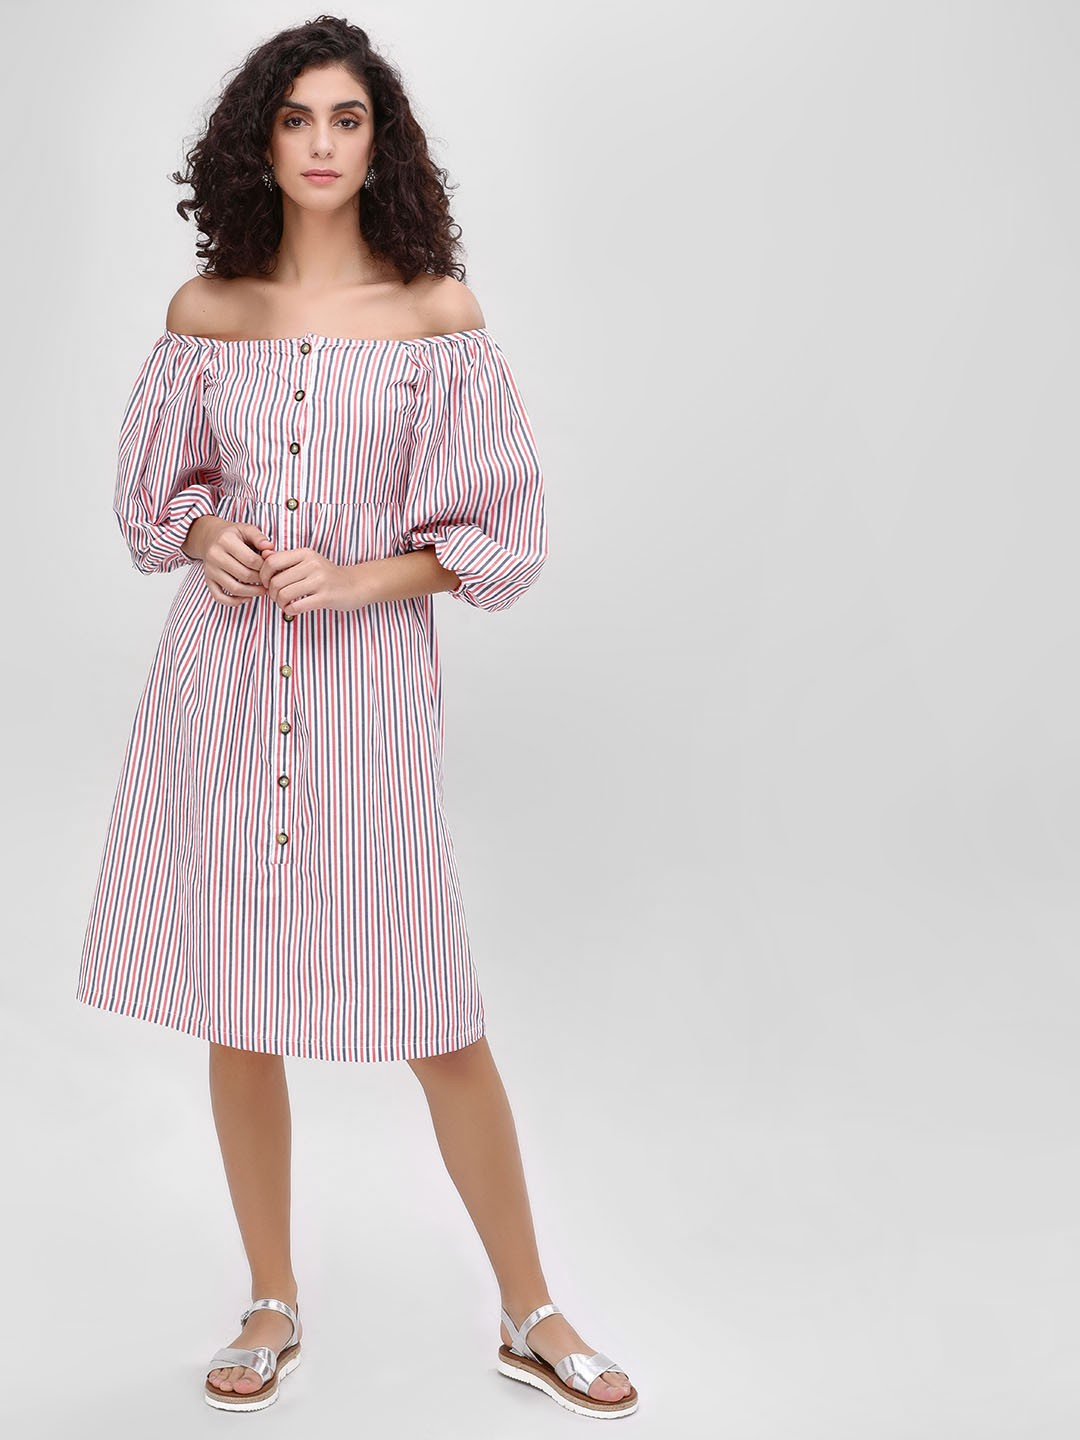 Sbuys Multi Striped Button Off Shoulder Dress 1